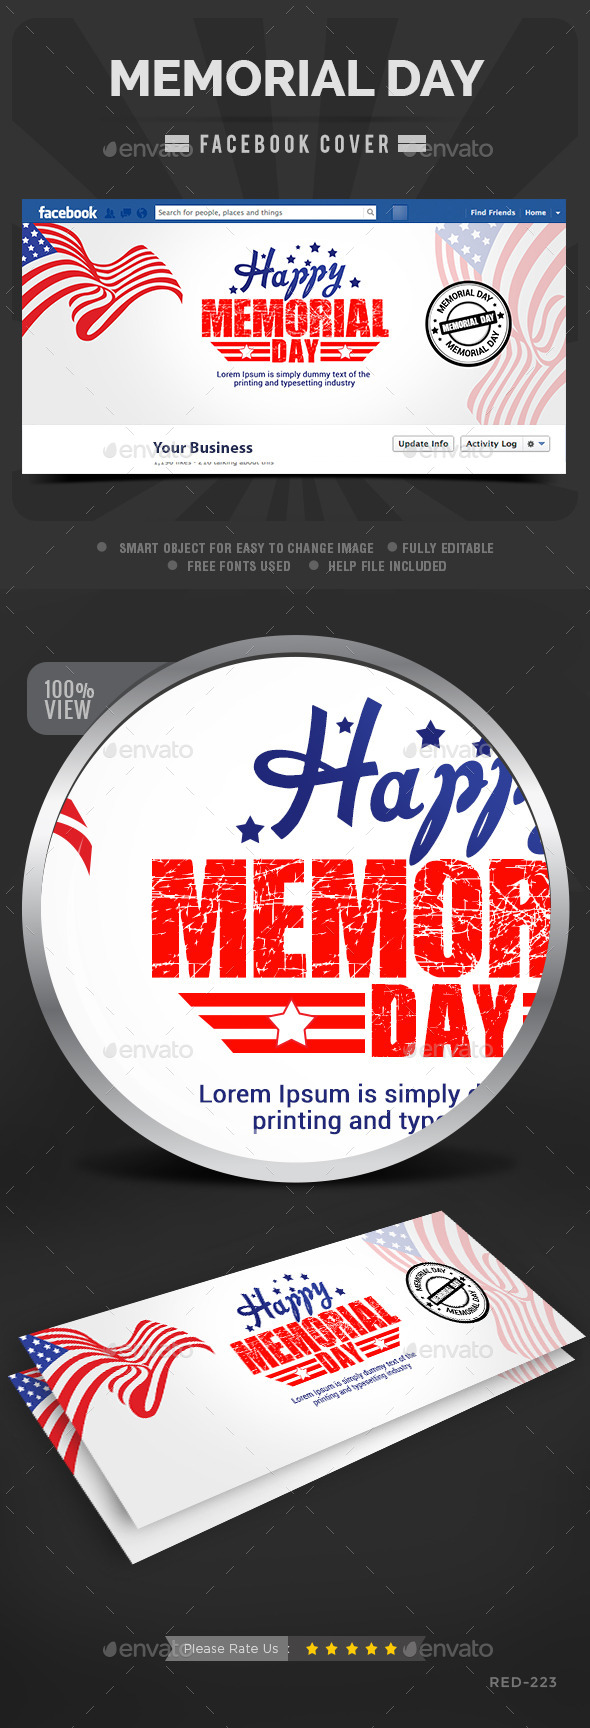 GraphicRiver Memorial Day Facebook Cover 11544809